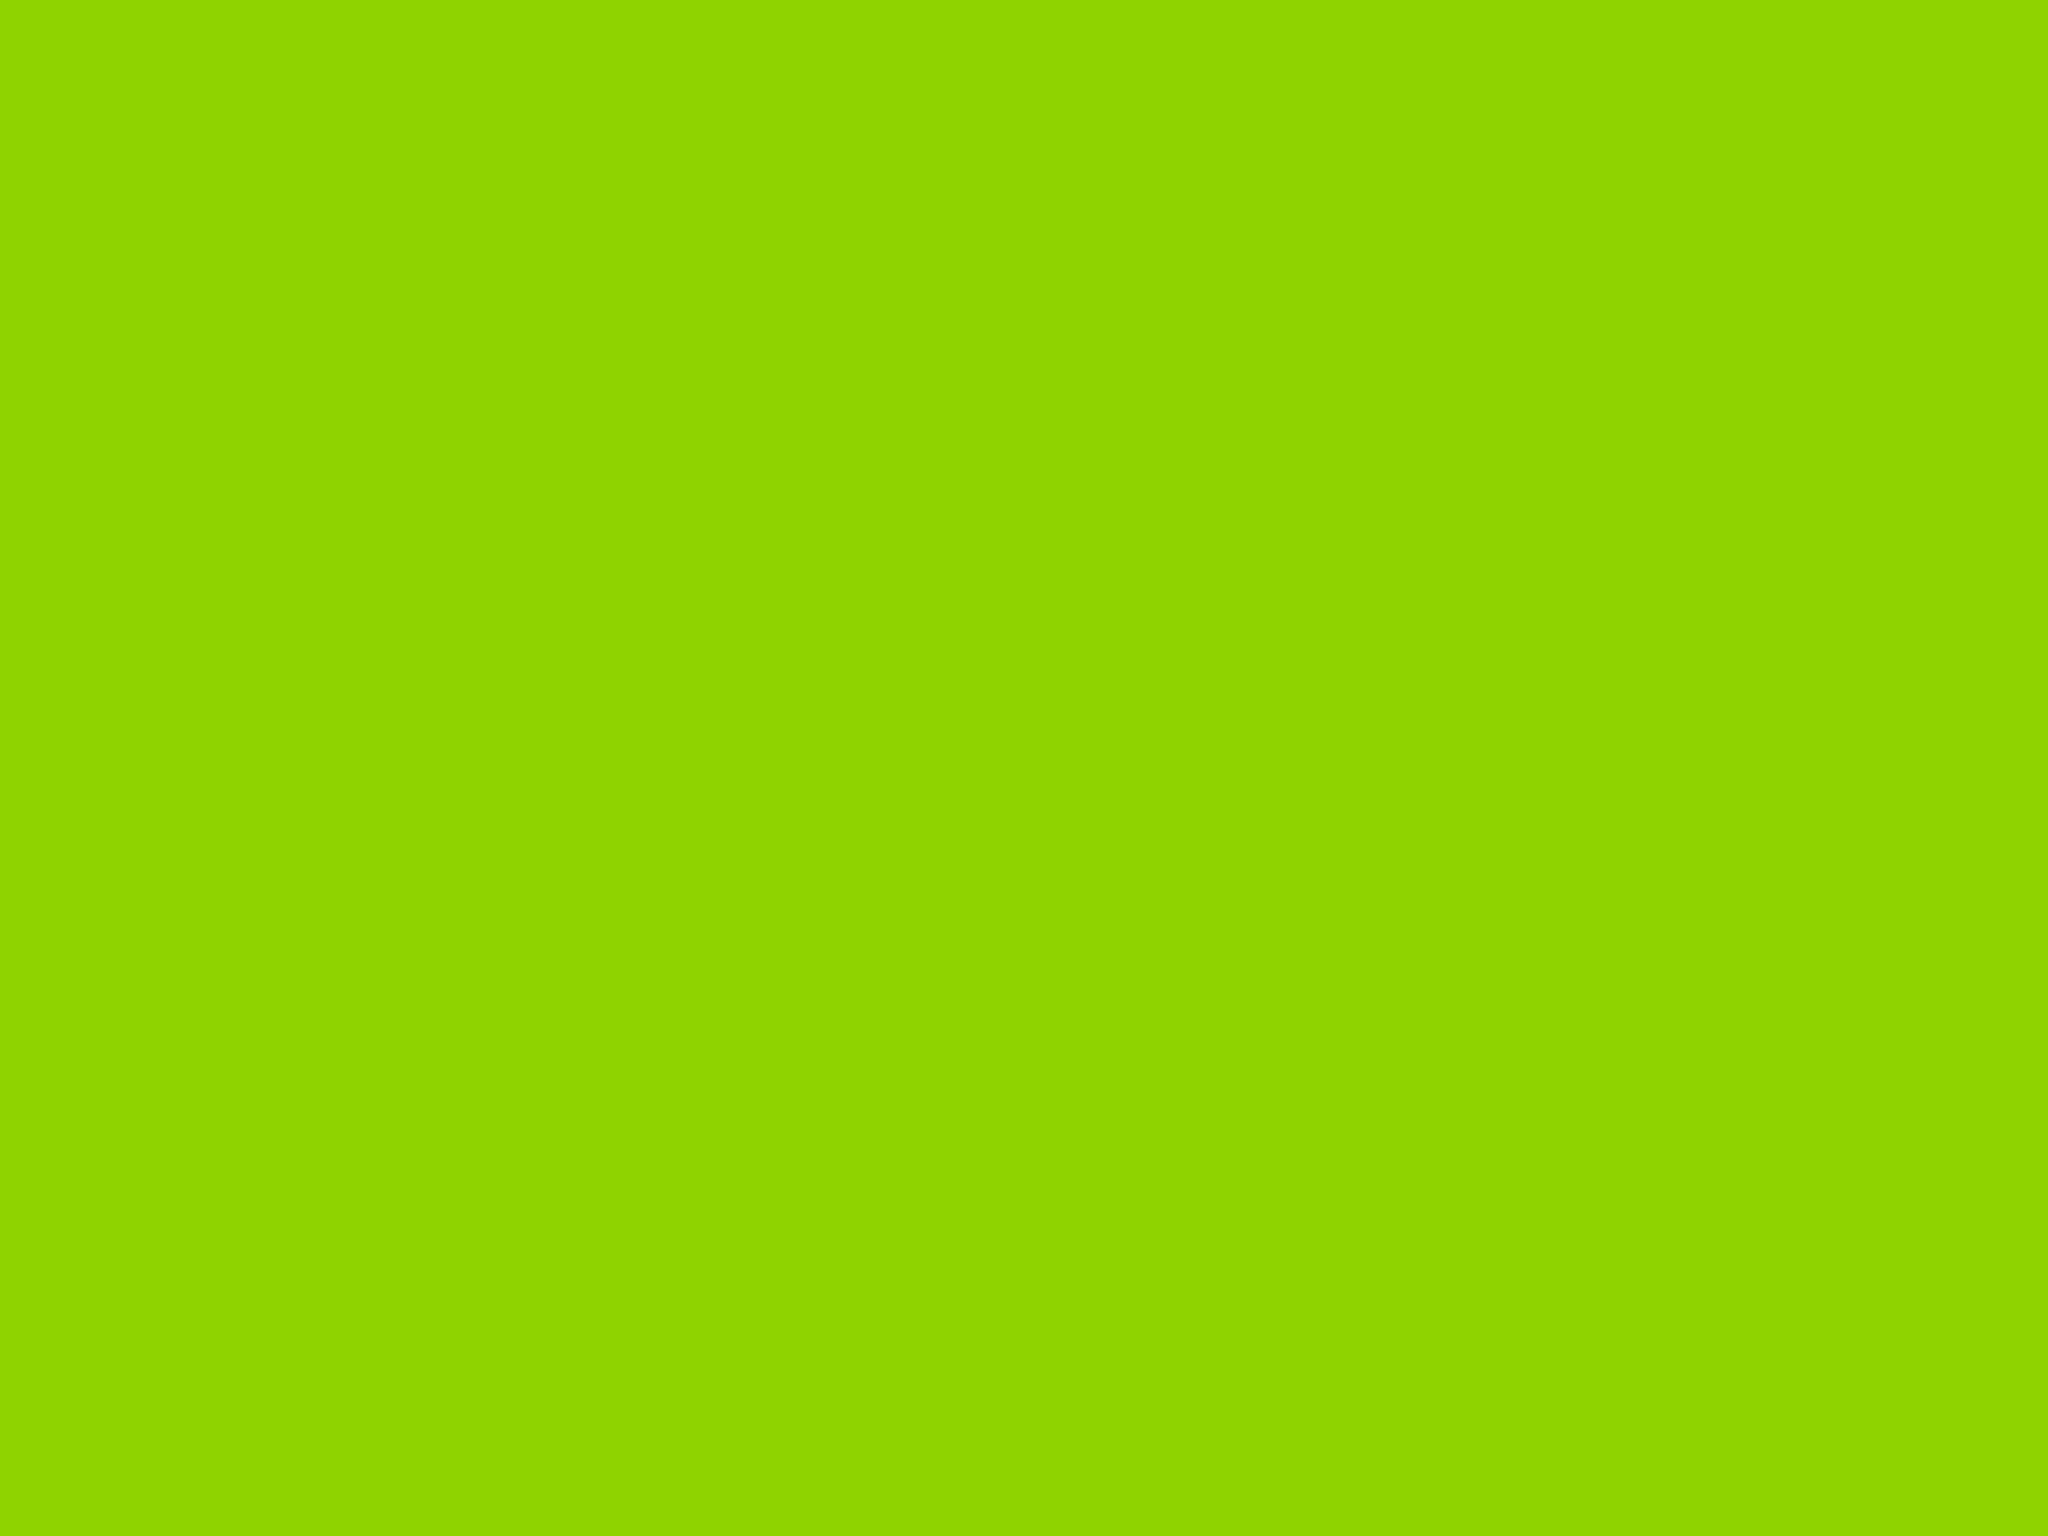 2048x1536 Sheen Green Solid Color Background